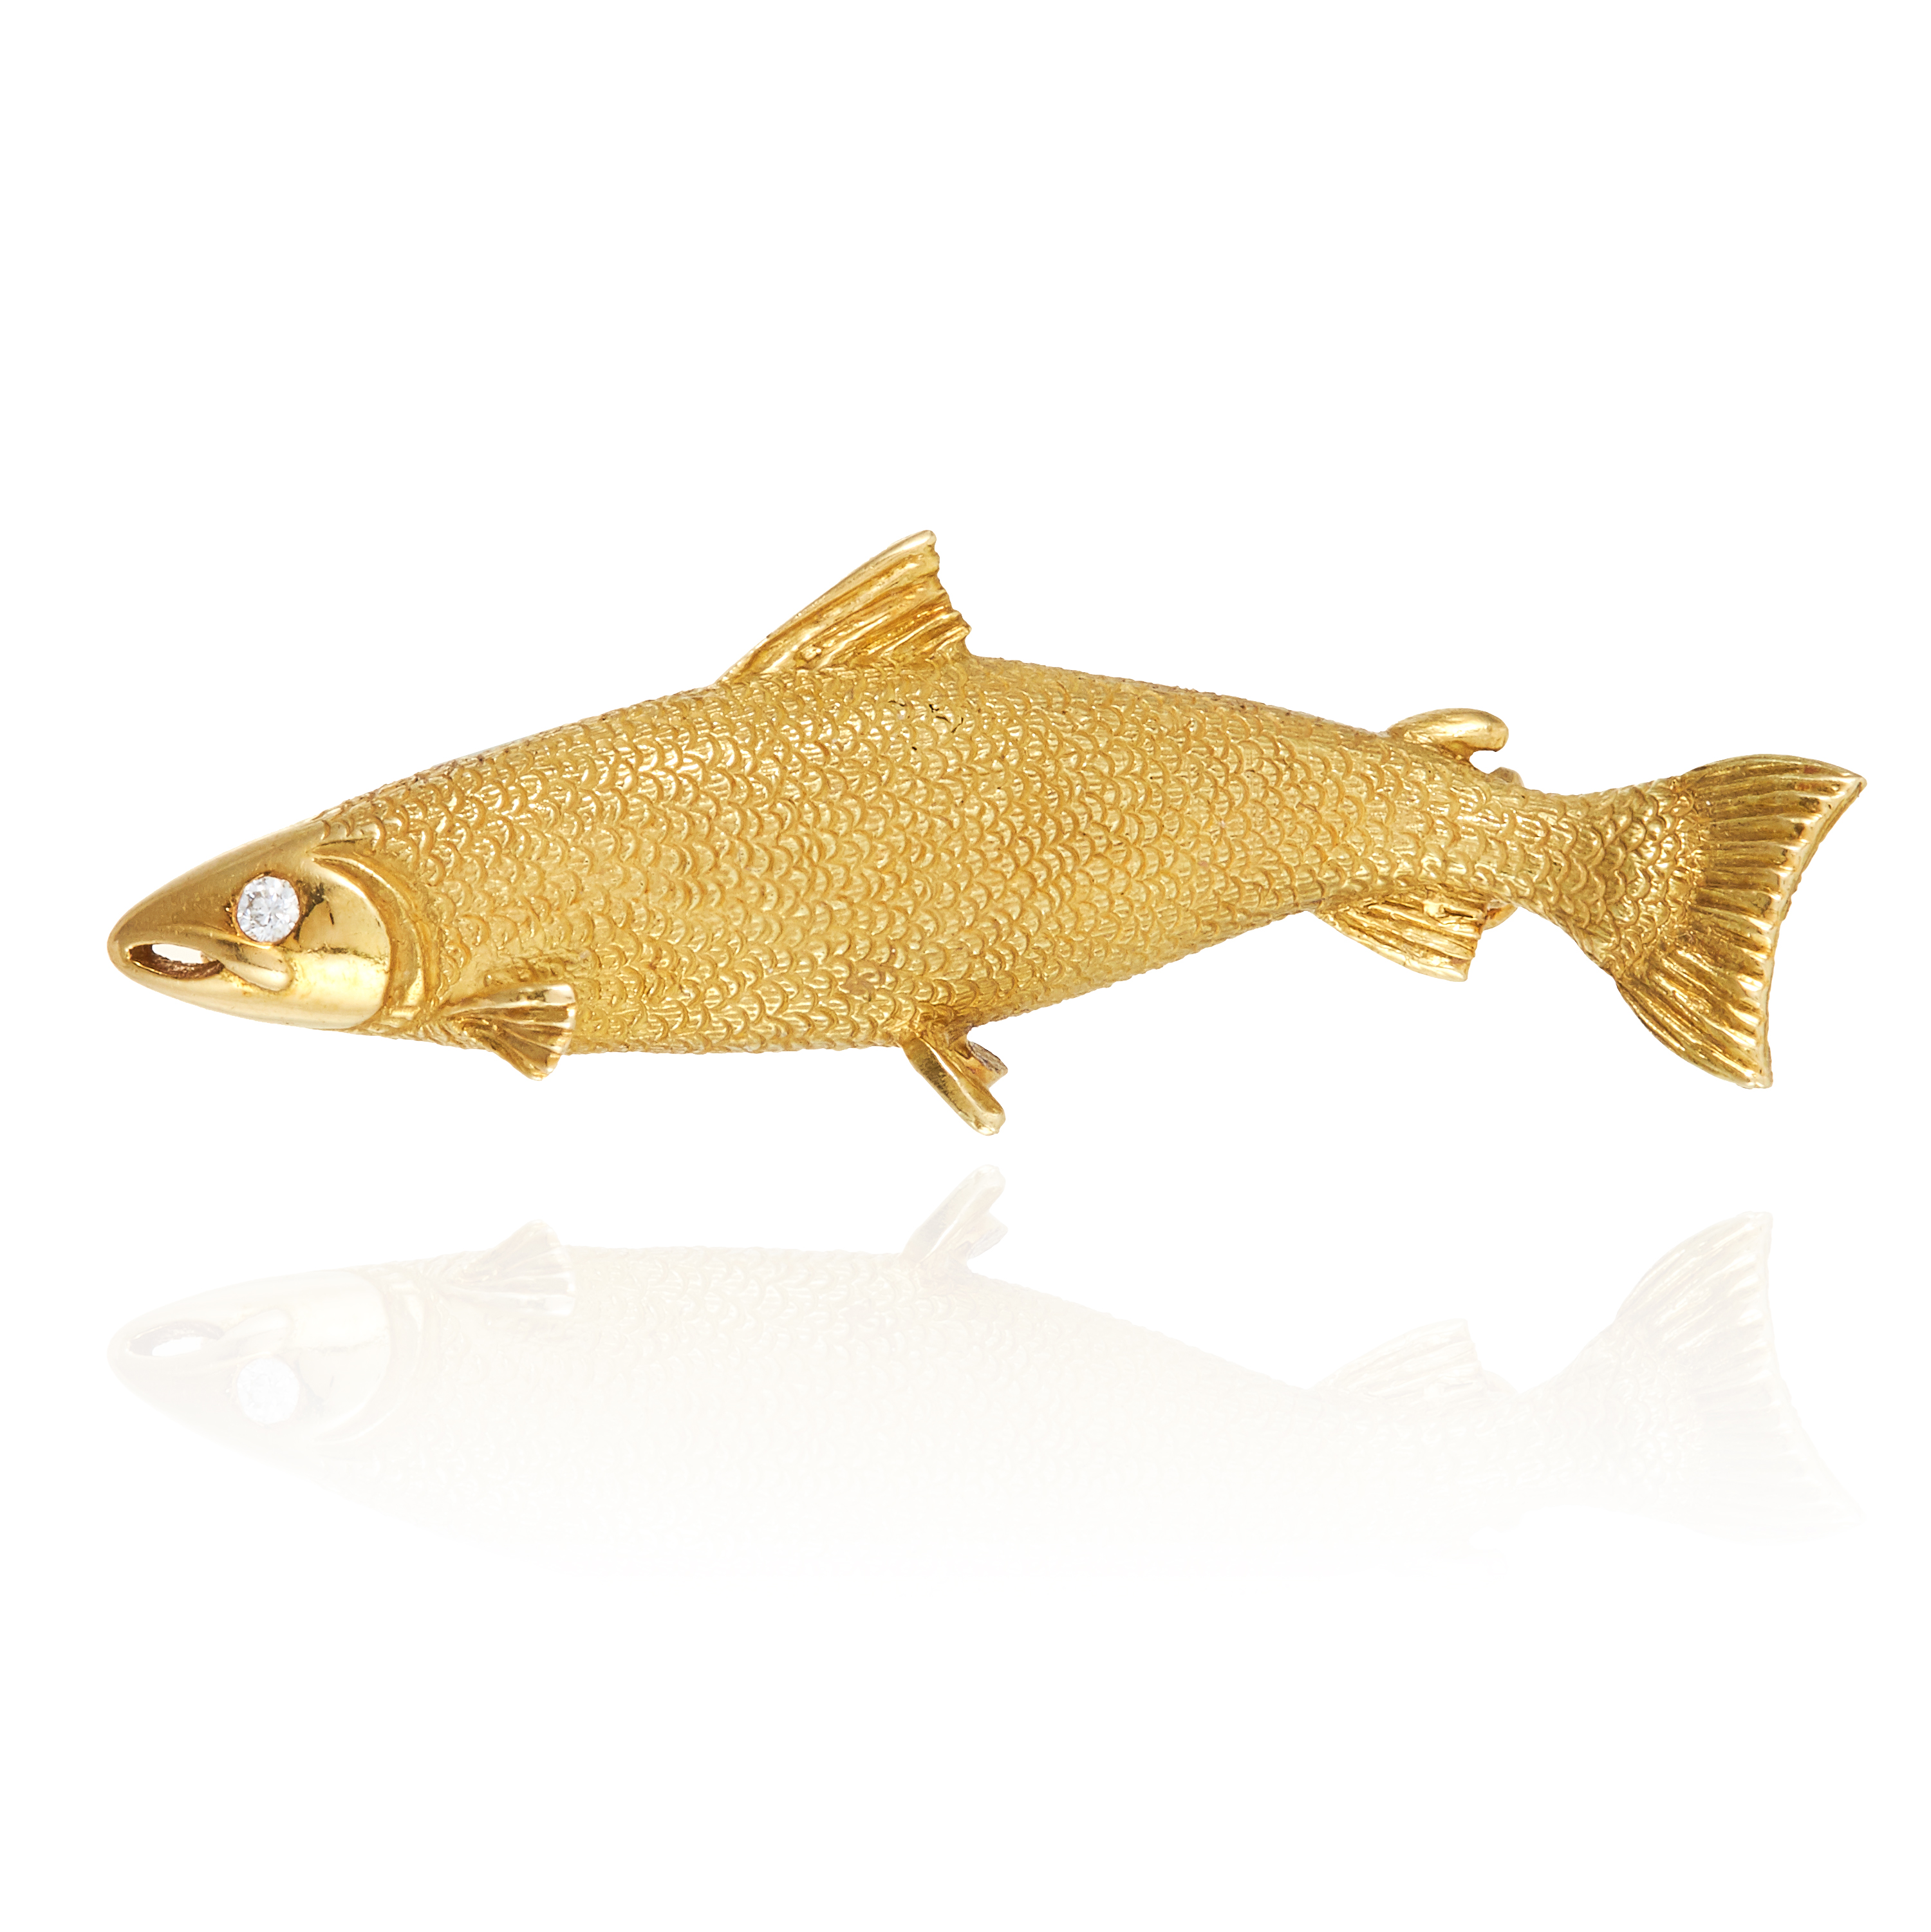 A NOVELTY DIAMOND FISH BROOCH in 18ct yellow gold, designed as a trout, jewelled with a round cut